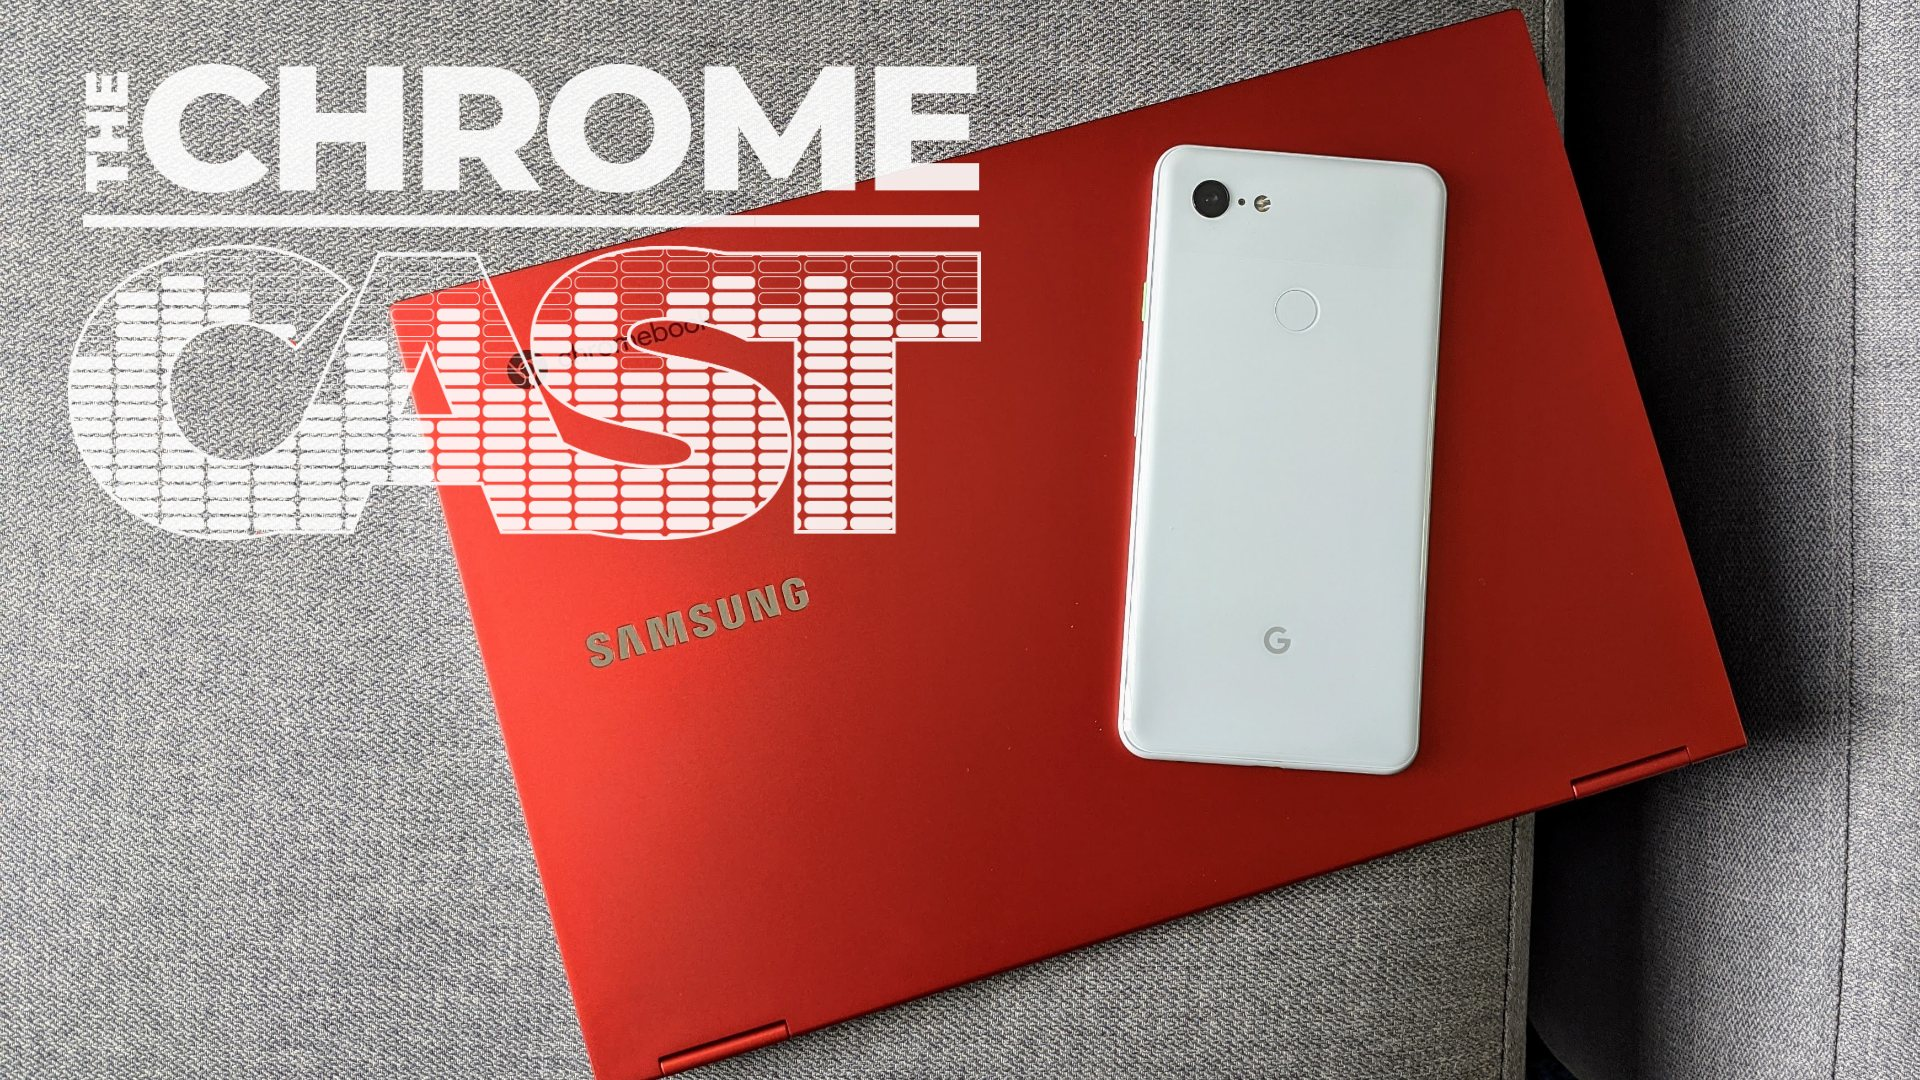 The Chrome Cast 56: The new wave of Chromebooks is here and we have some thoughts